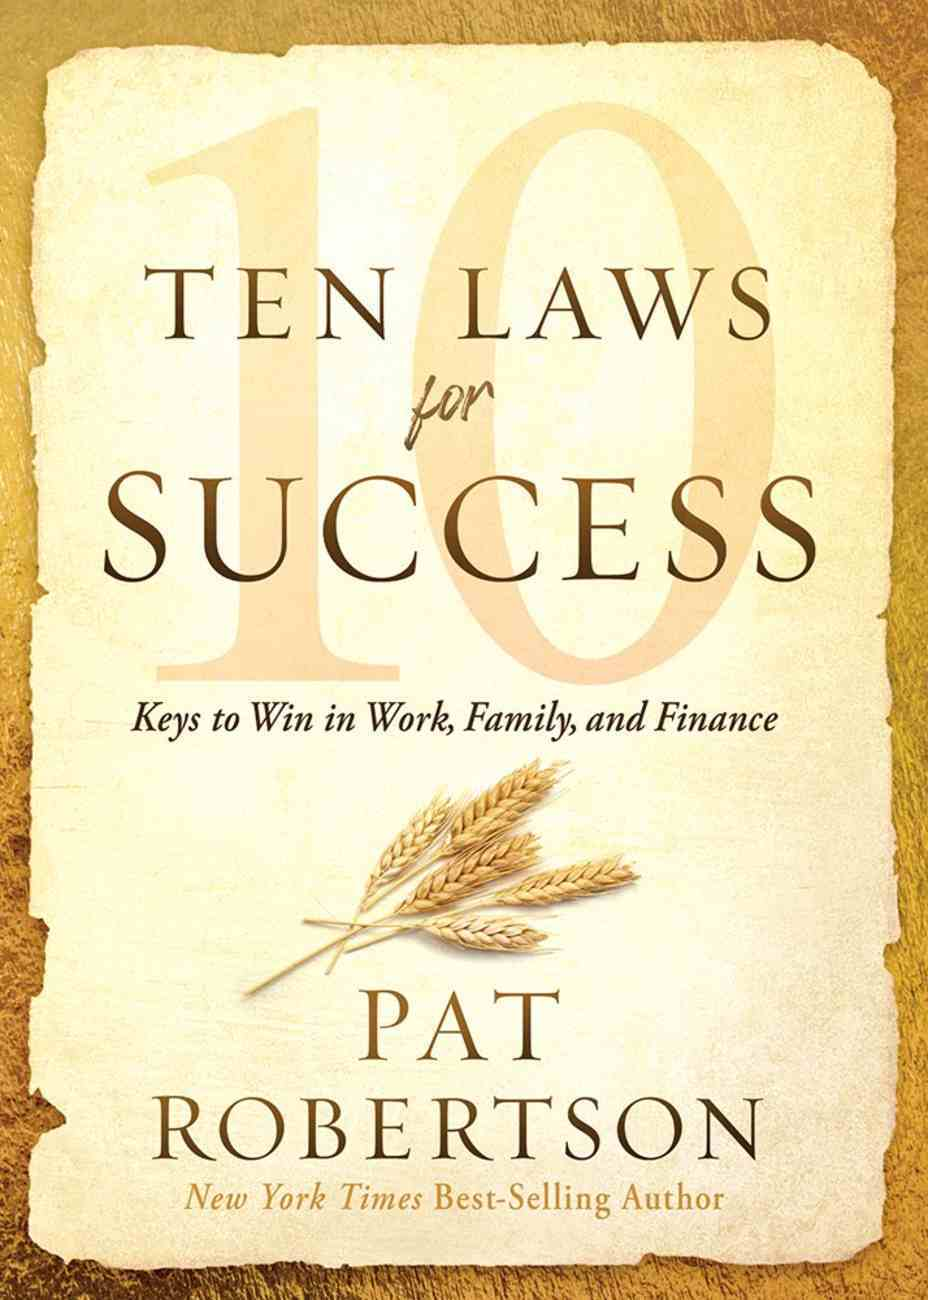 Ten Laws For Success: Keys to Win in Work, Family, and Finance Hardback